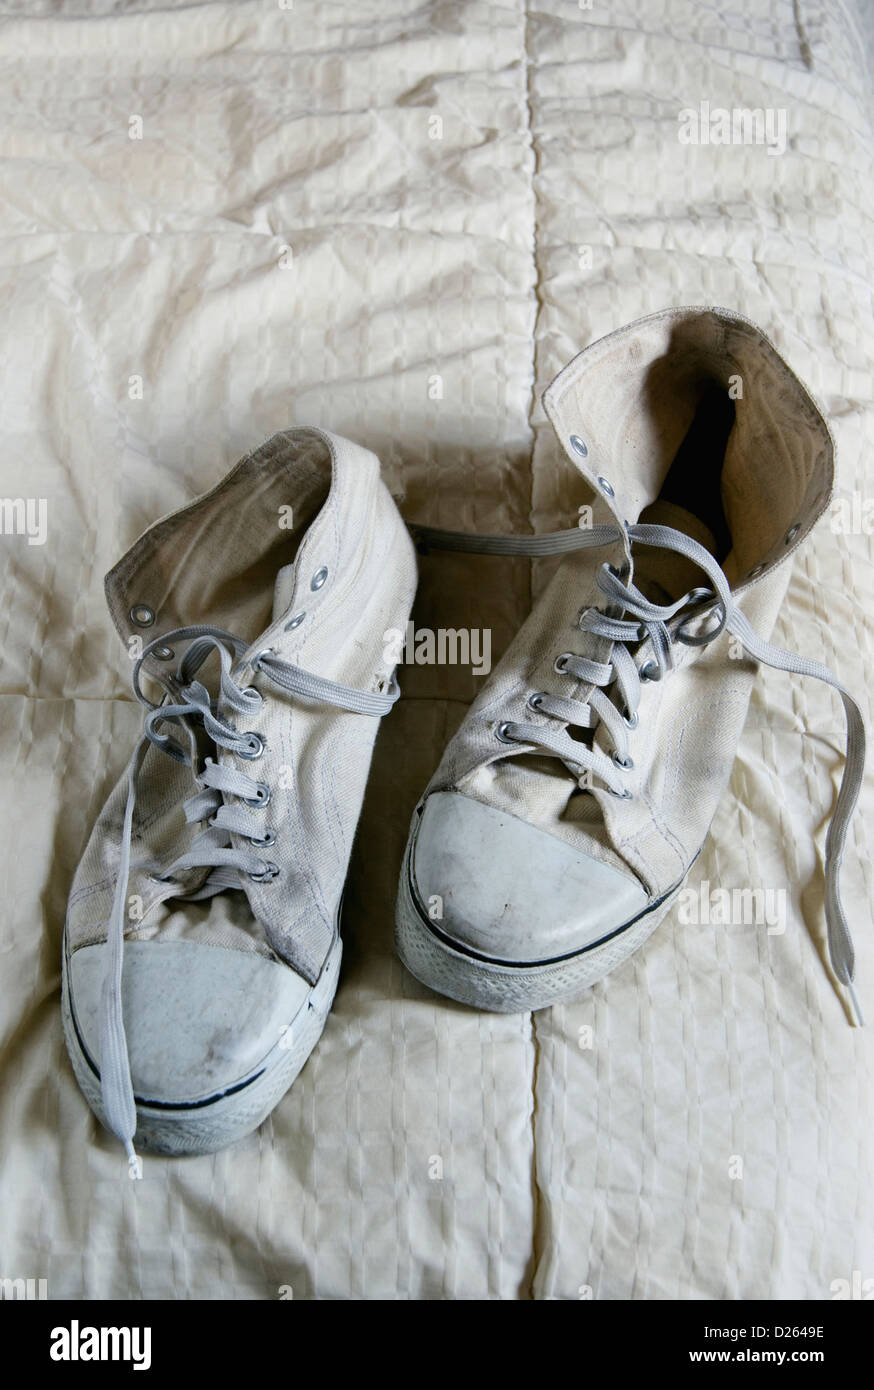 pair of old tennis shoes sitting on a bed. - Stock Image